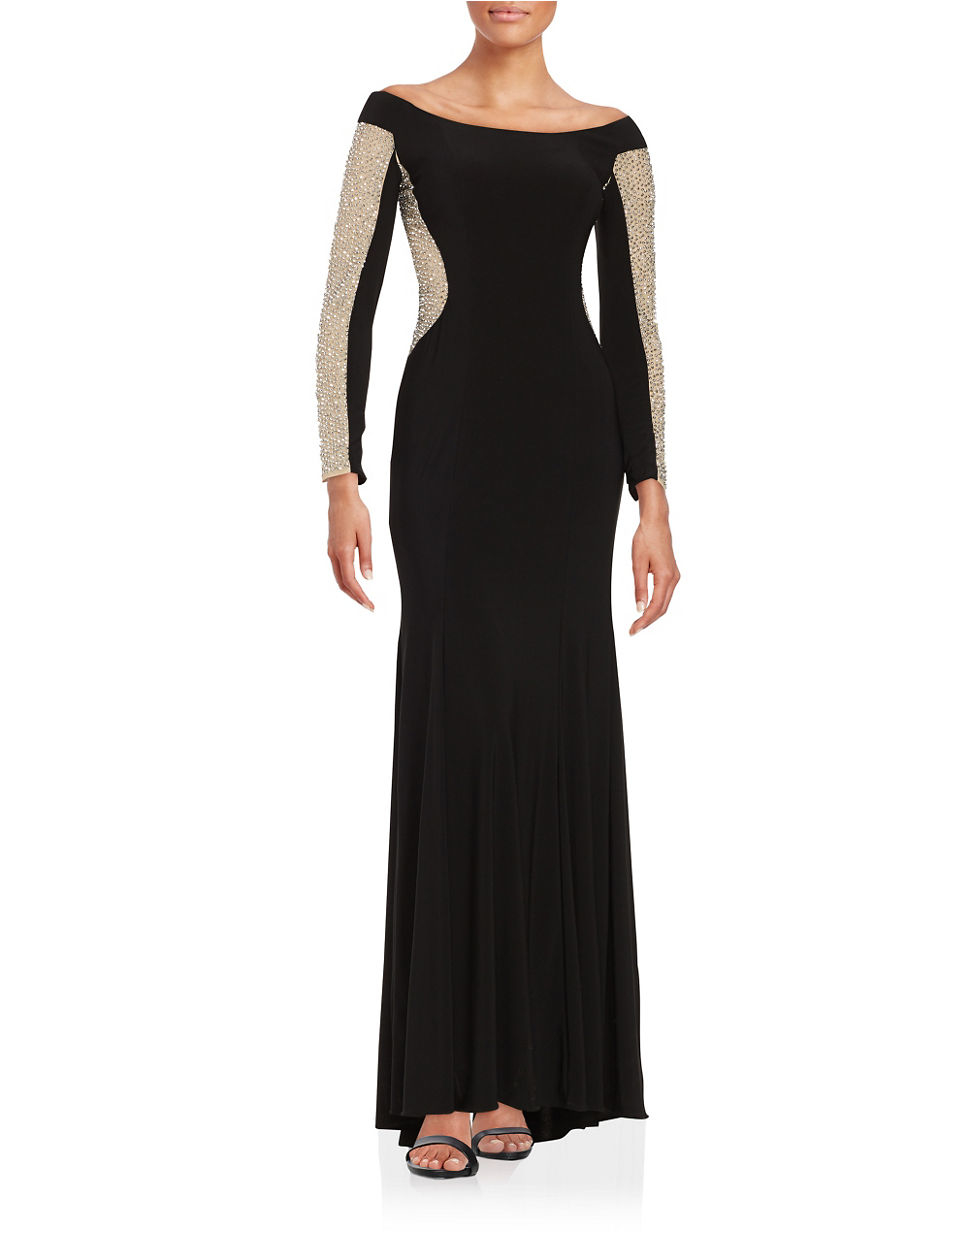 Lord Taylor Xscape Evening Dresses - Dress images